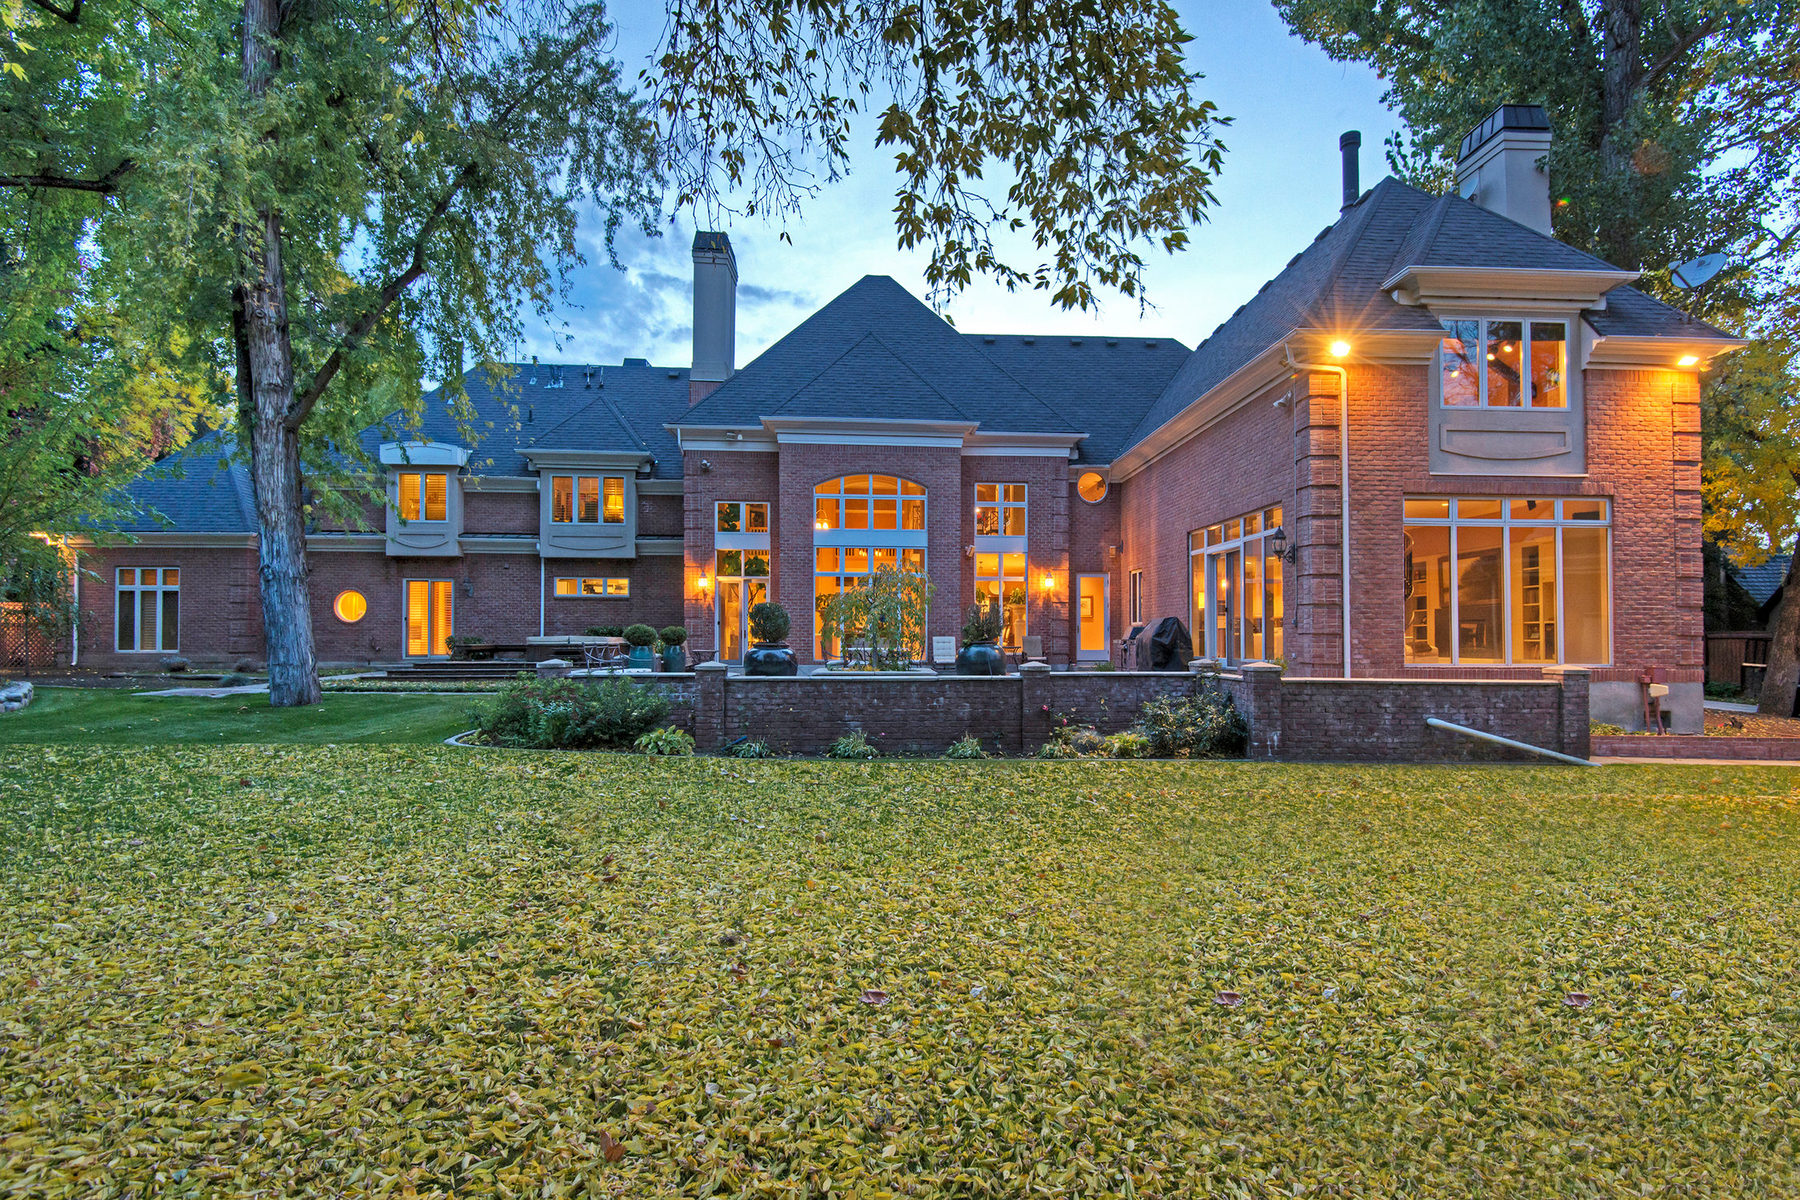 一戸建て のために 売買 アット Stunning, Elegant Estate on Wooded Lot 5497 S Walker Estates Cir Salt Lake City, ユタ, 84117 アメリカ合衆国